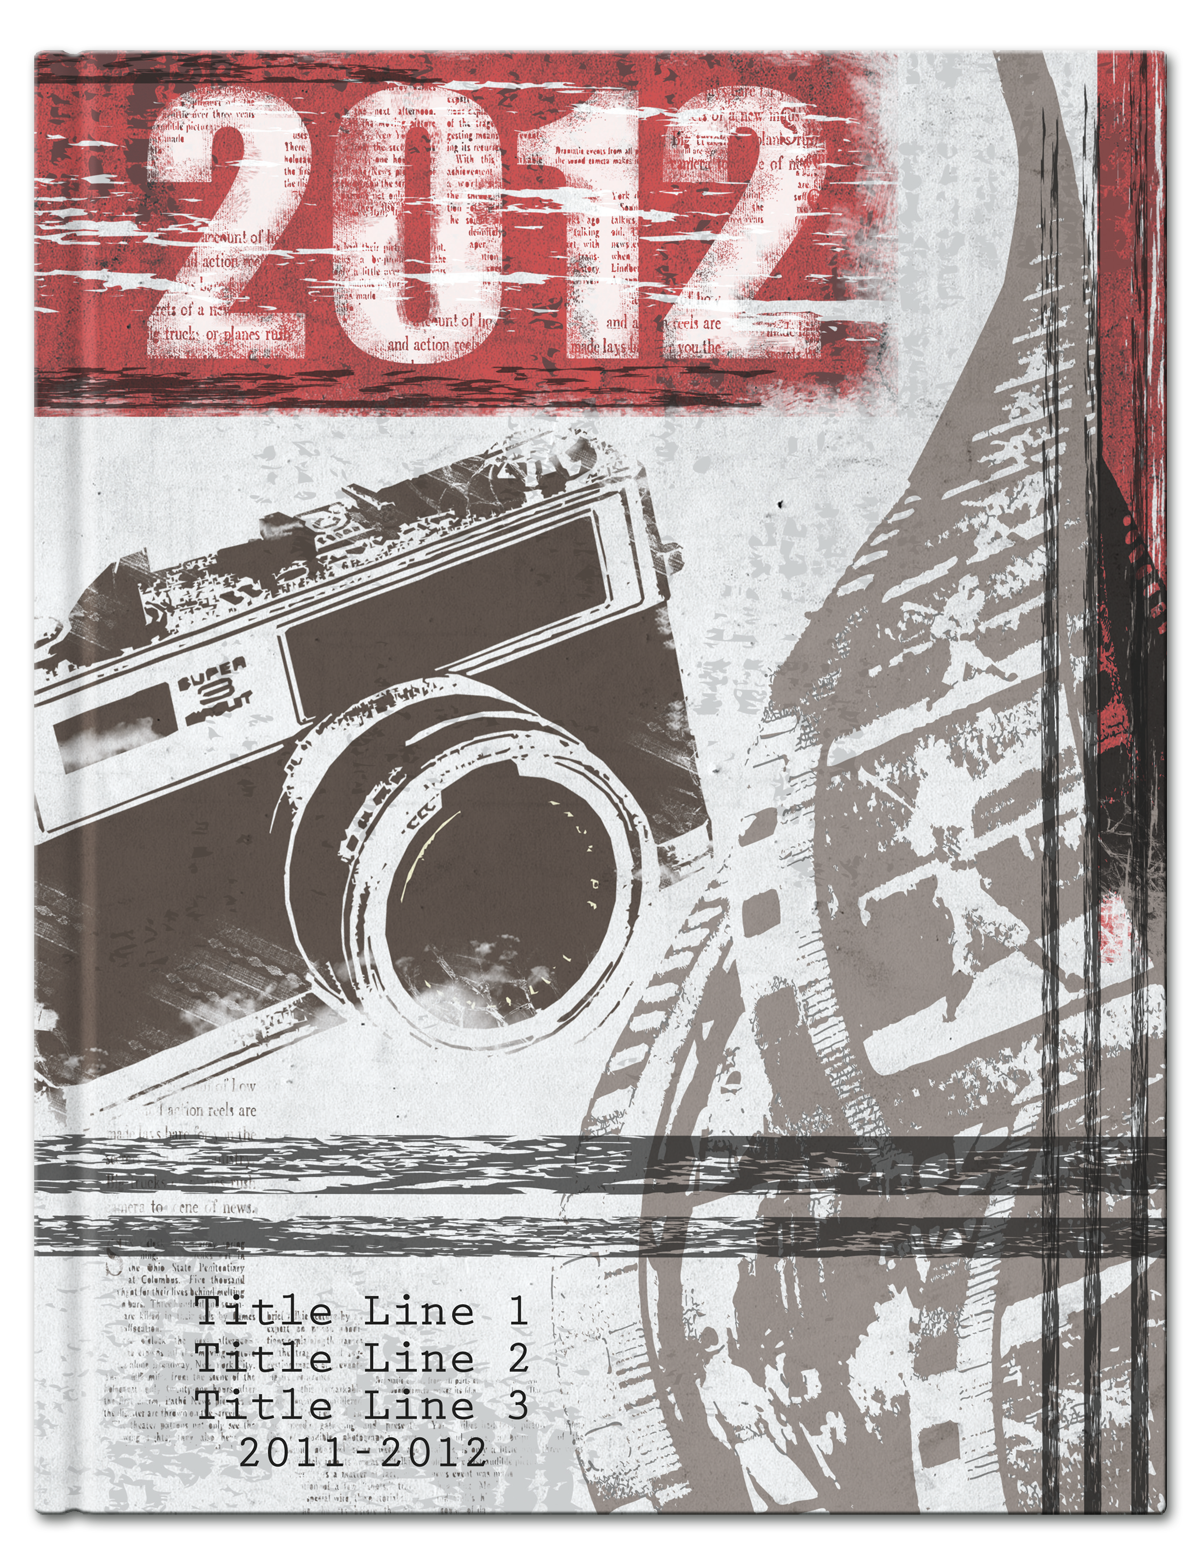 Cool Yearbook Cover Ideas ~ Yearbook theme ideas on pinterest